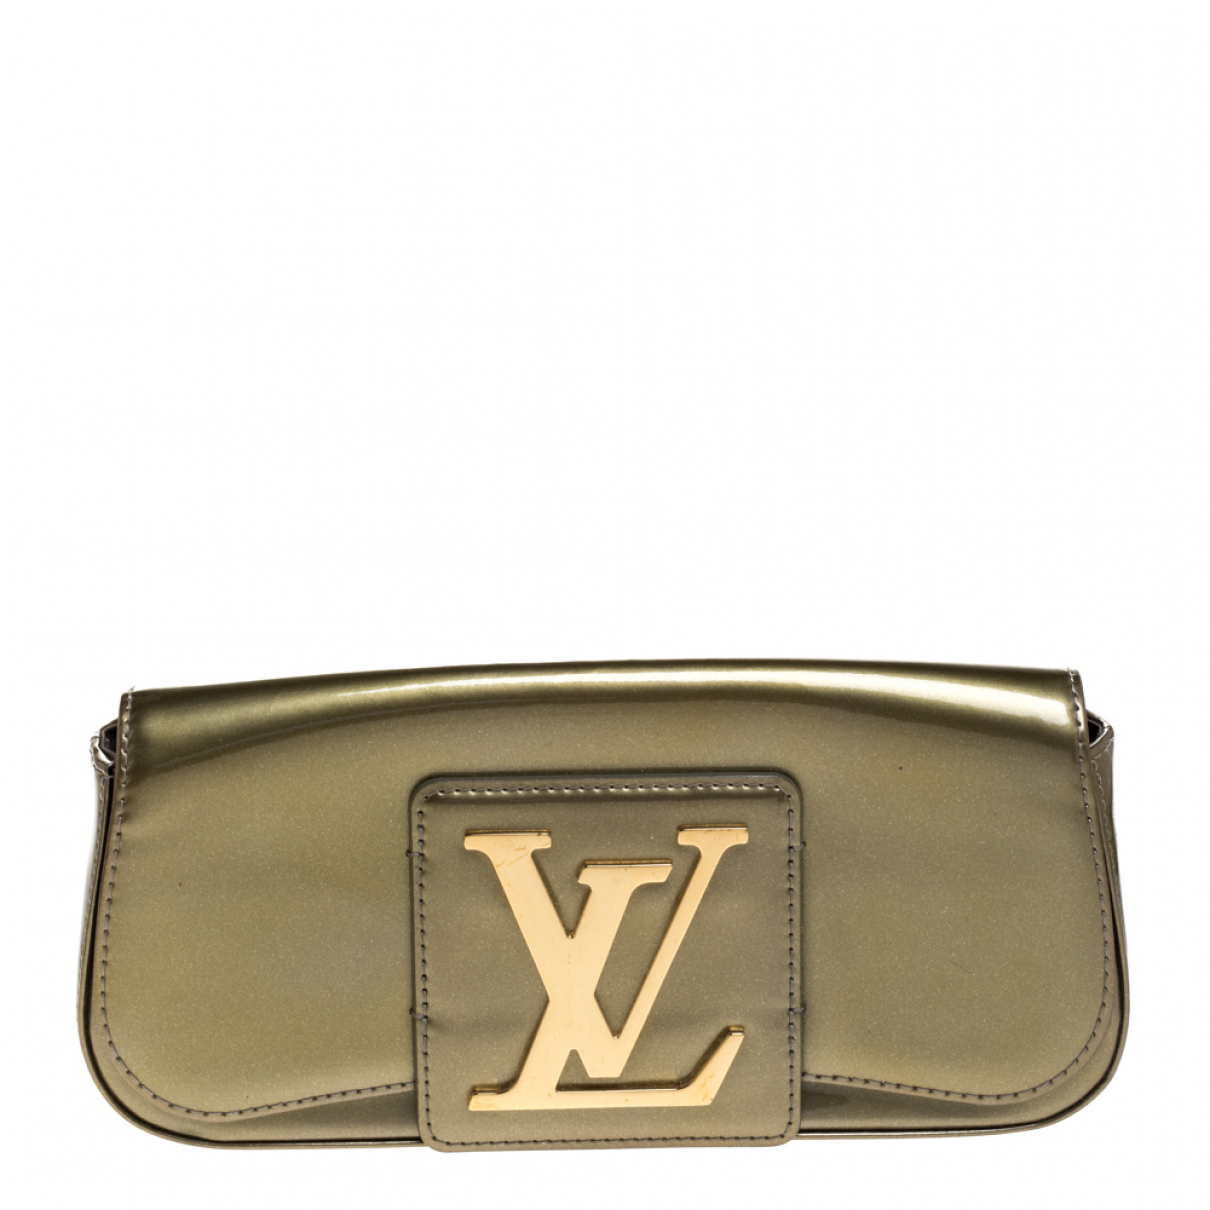 Louis Vuitton N Green Patent leather Clutch bag for Women N